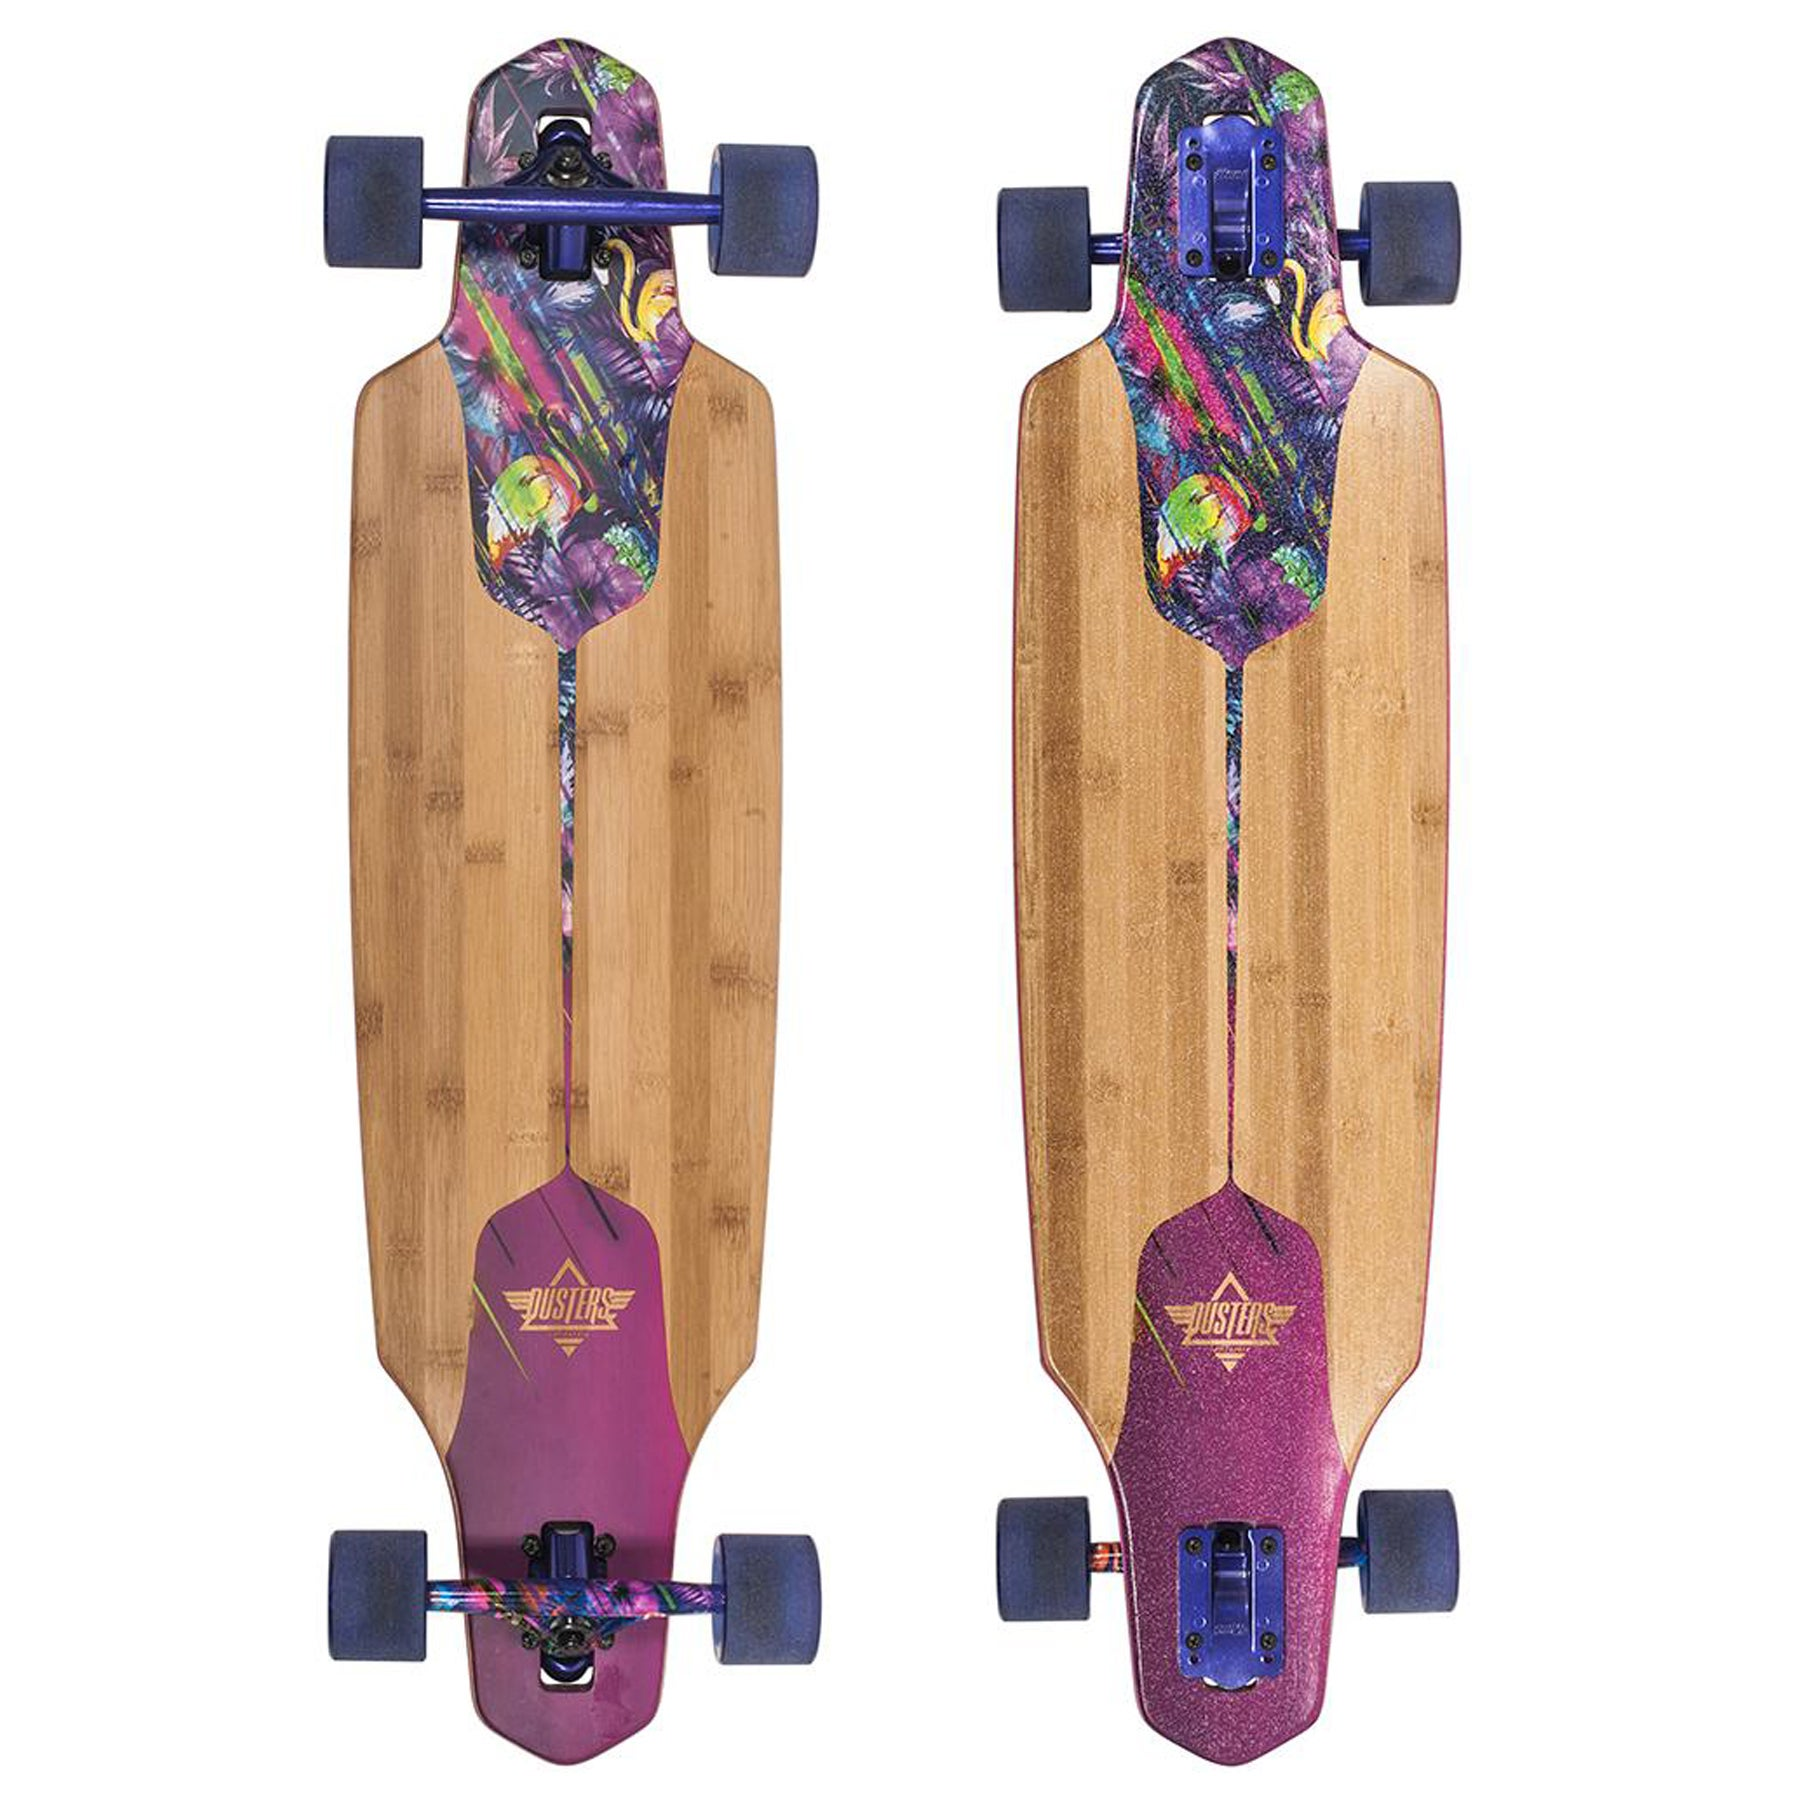 Longboard Dusters Channel Tripycal 38 Inch - Purple